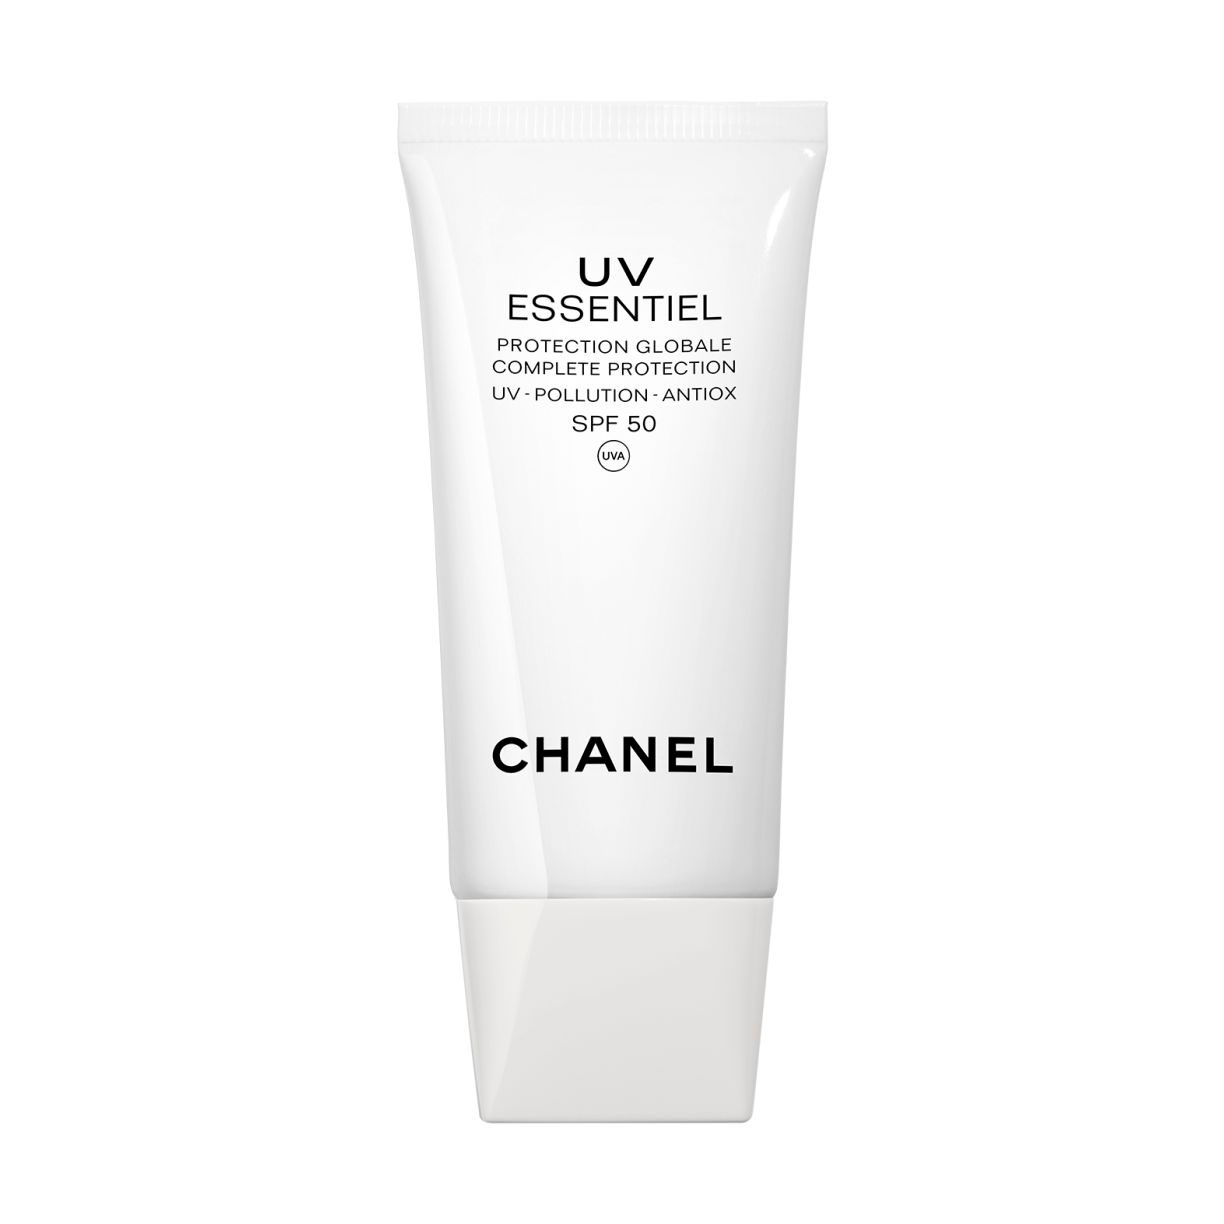 UV ESSENTIEL COMPLETE PROTECTION UV – POLLUTION - ANTIOX SPF 50 30ml